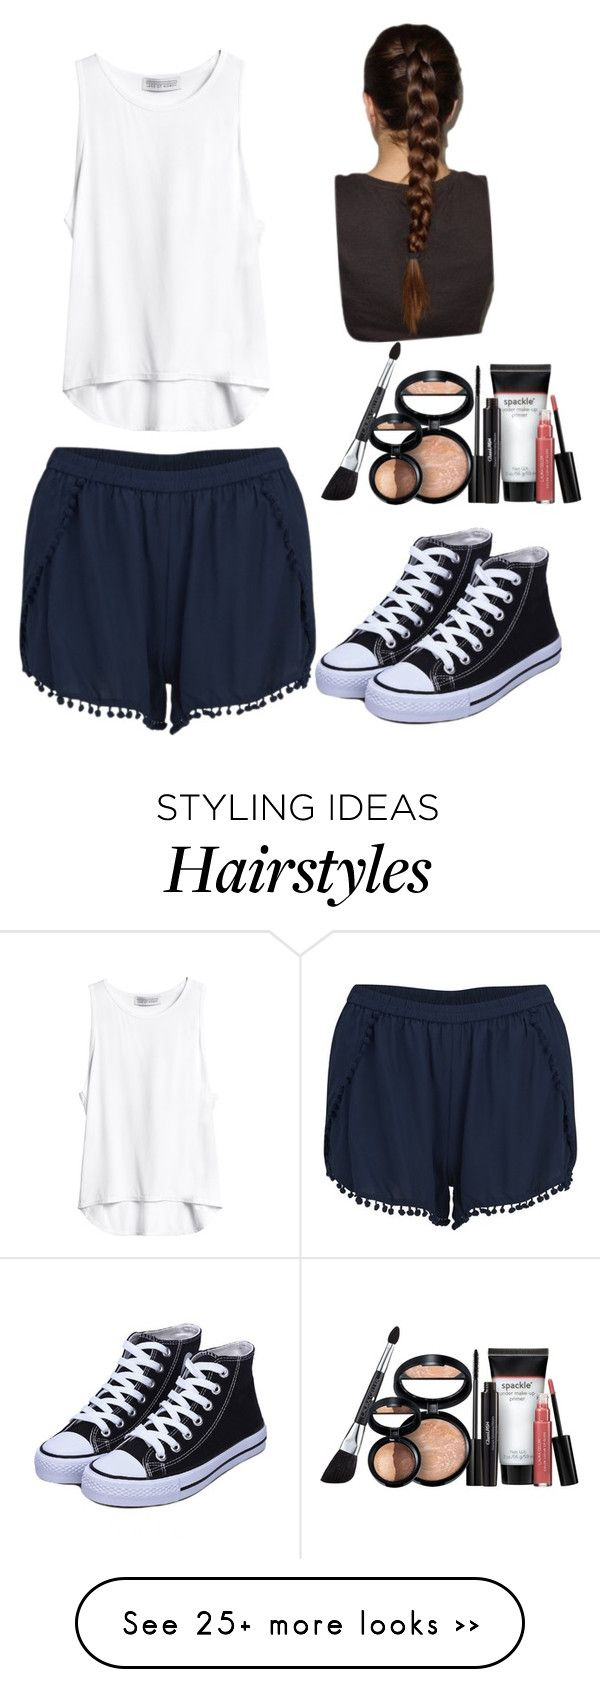 """Untitled #45"" by vanessaa2022 on Polyvore featuring moda, VILA y Laura Geller"